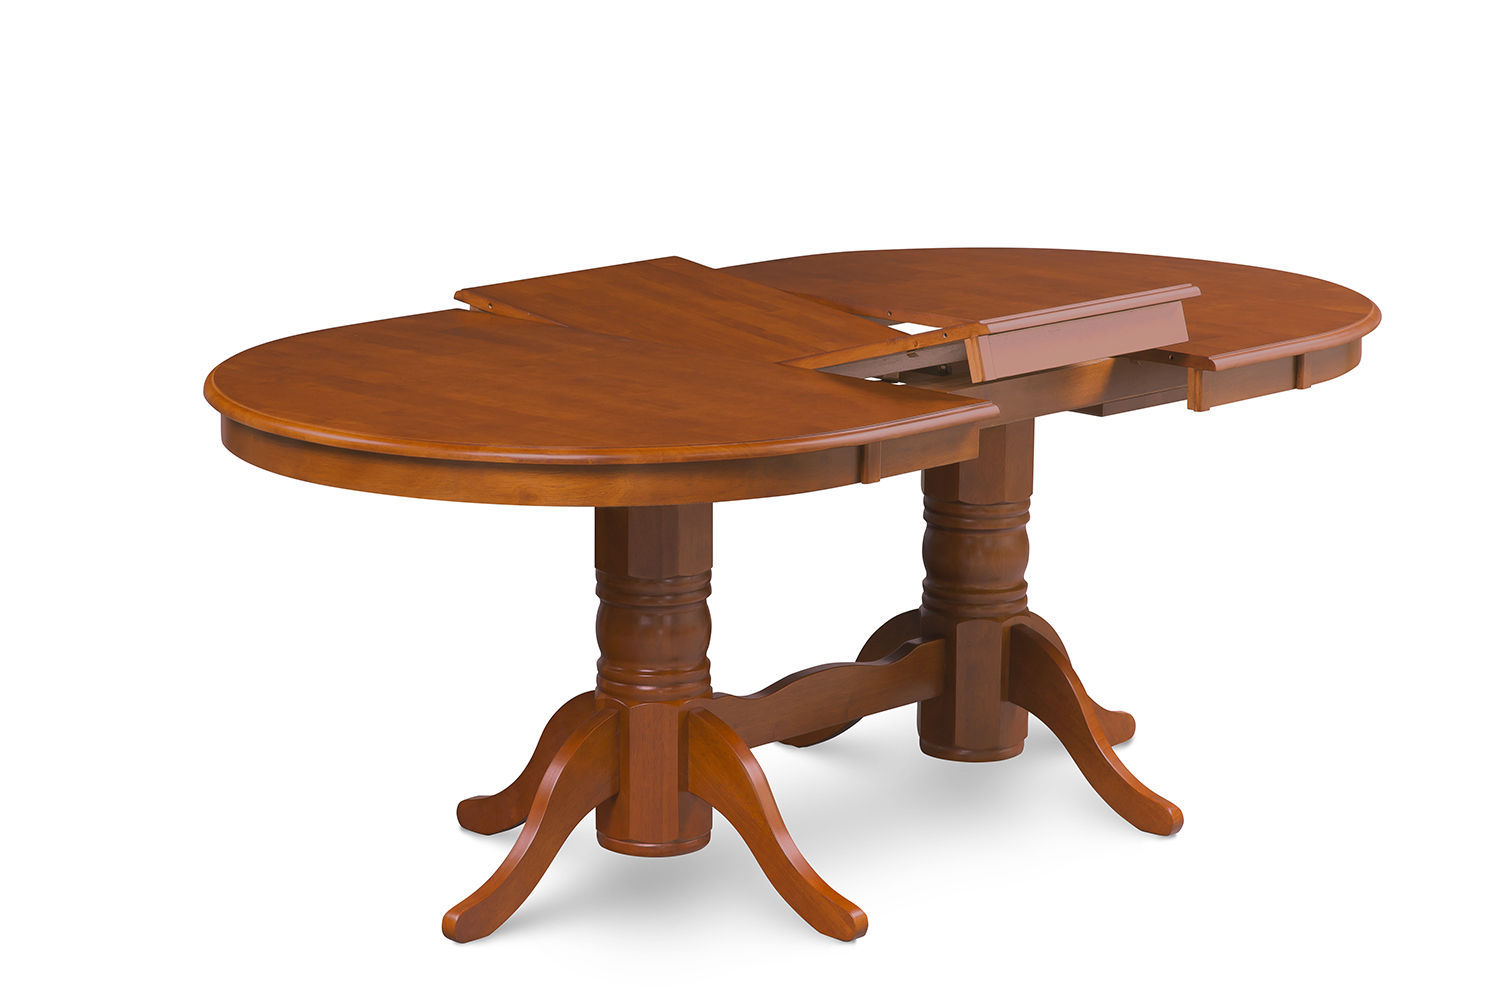 9-PC SET OVAL DINETTE DINING ROOM TABLE w/ 8 WOOD SEAT CHAIRS, SADDLE BROWN